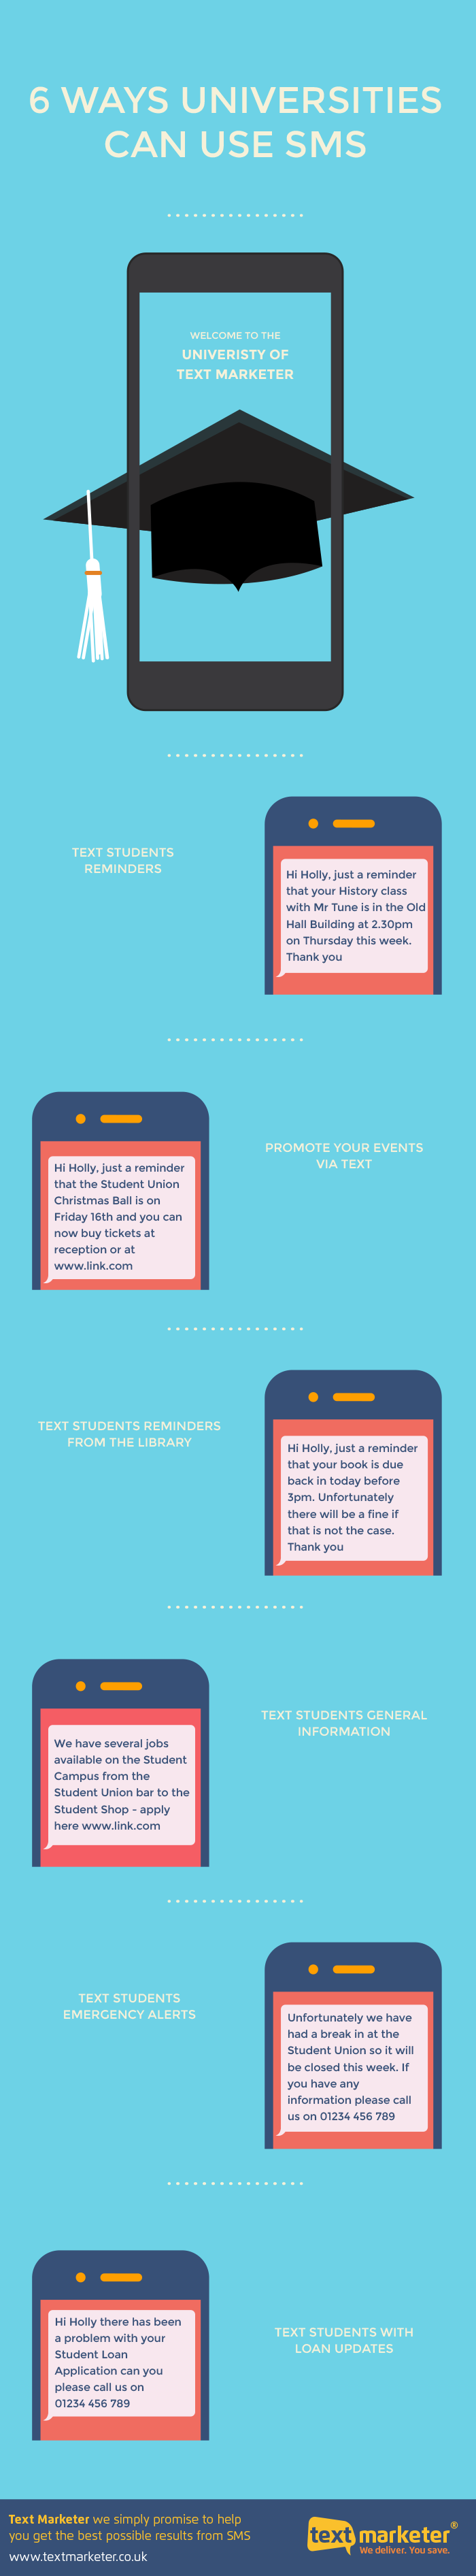 Univeristy SMS infographic